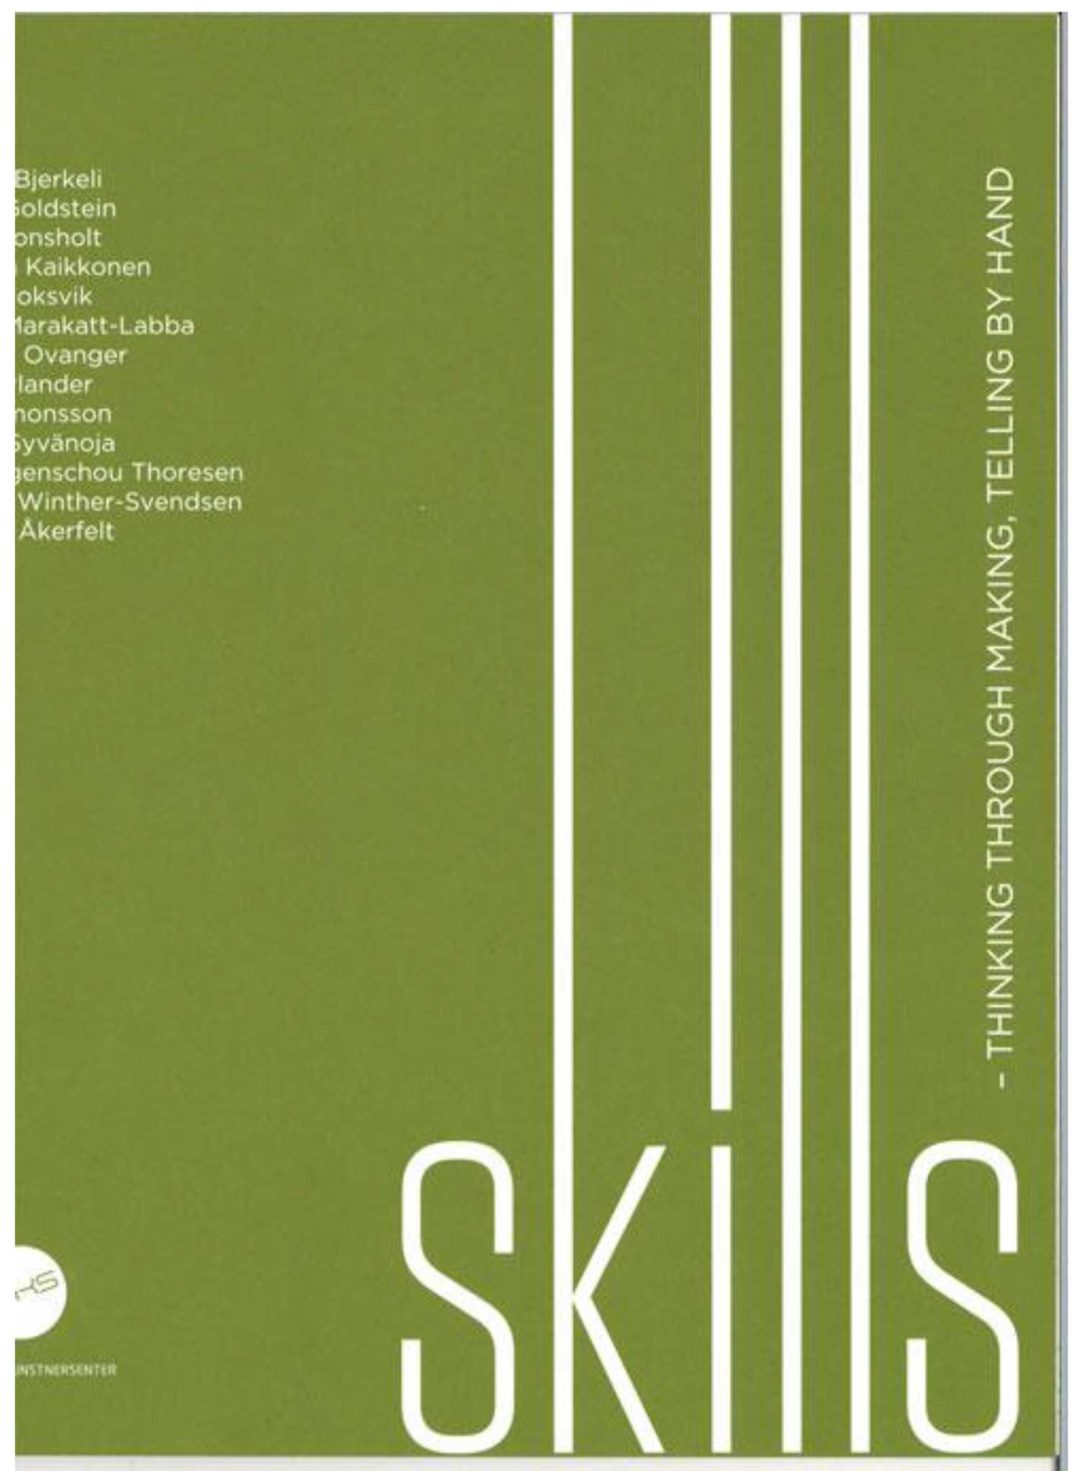 Skills – Thinking through making, telling by hand